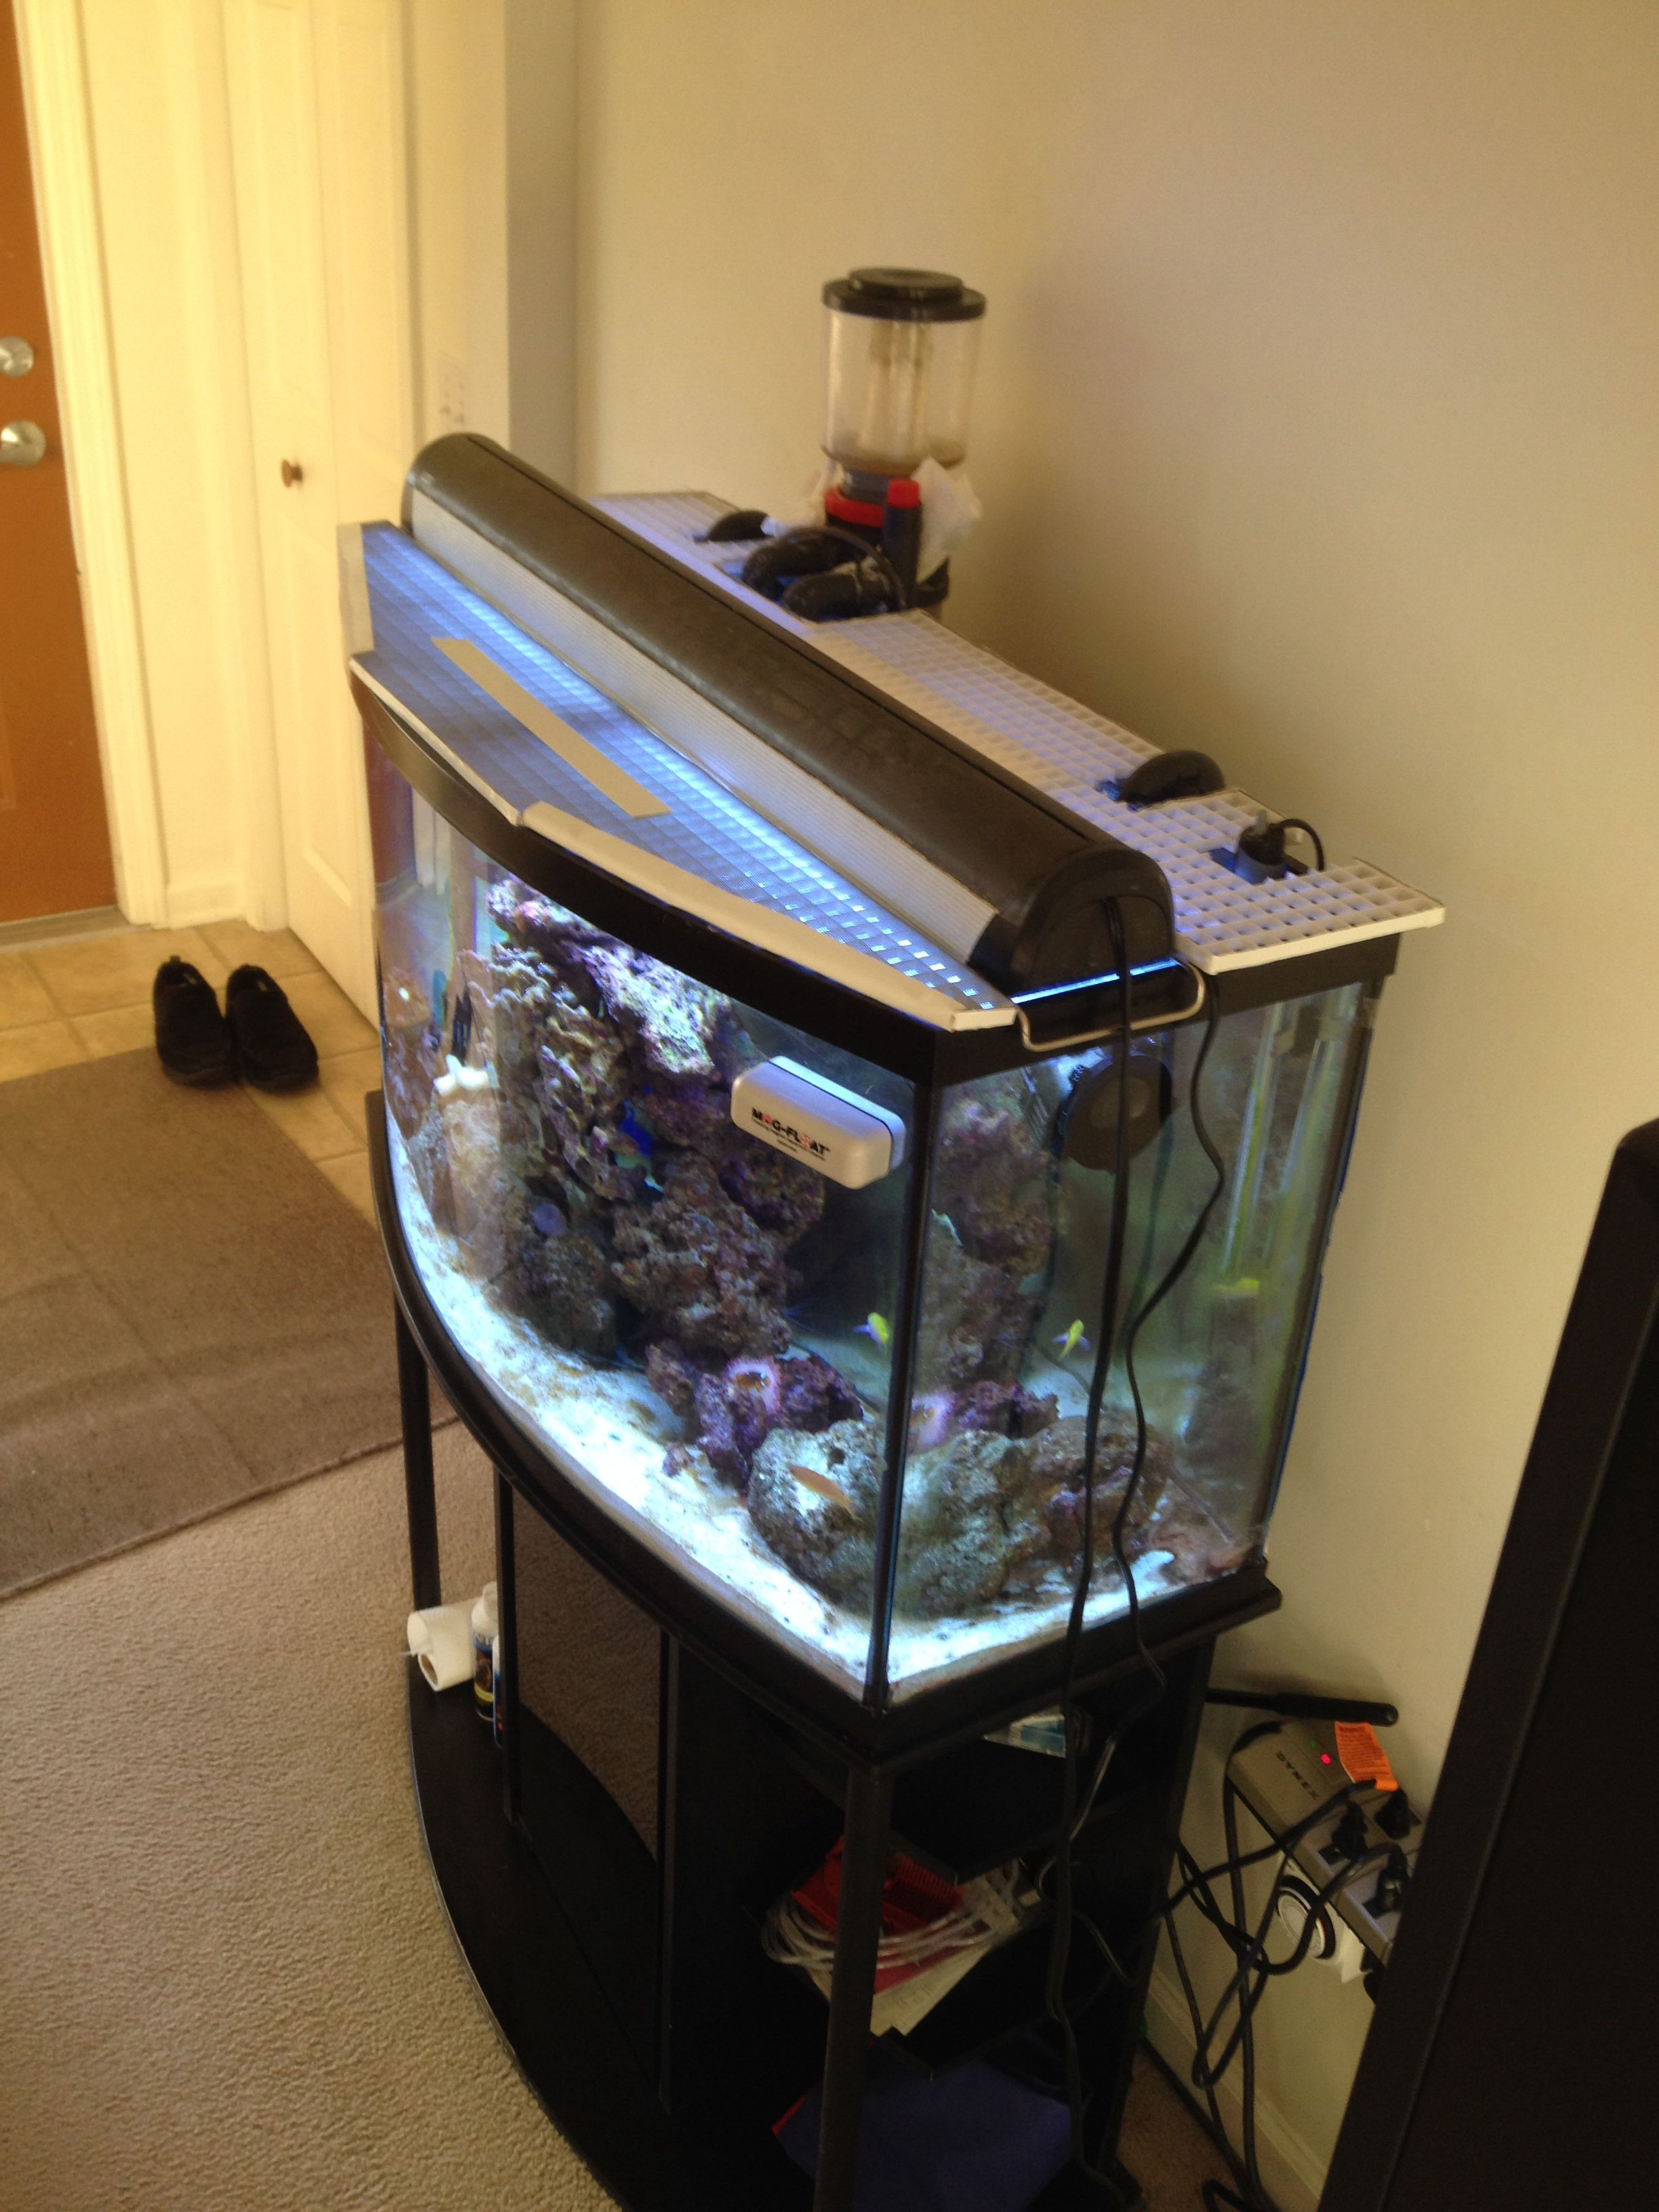 Pin By T On Diy Diy Fish Tank Double Sided Sticky Tape Fish Tank